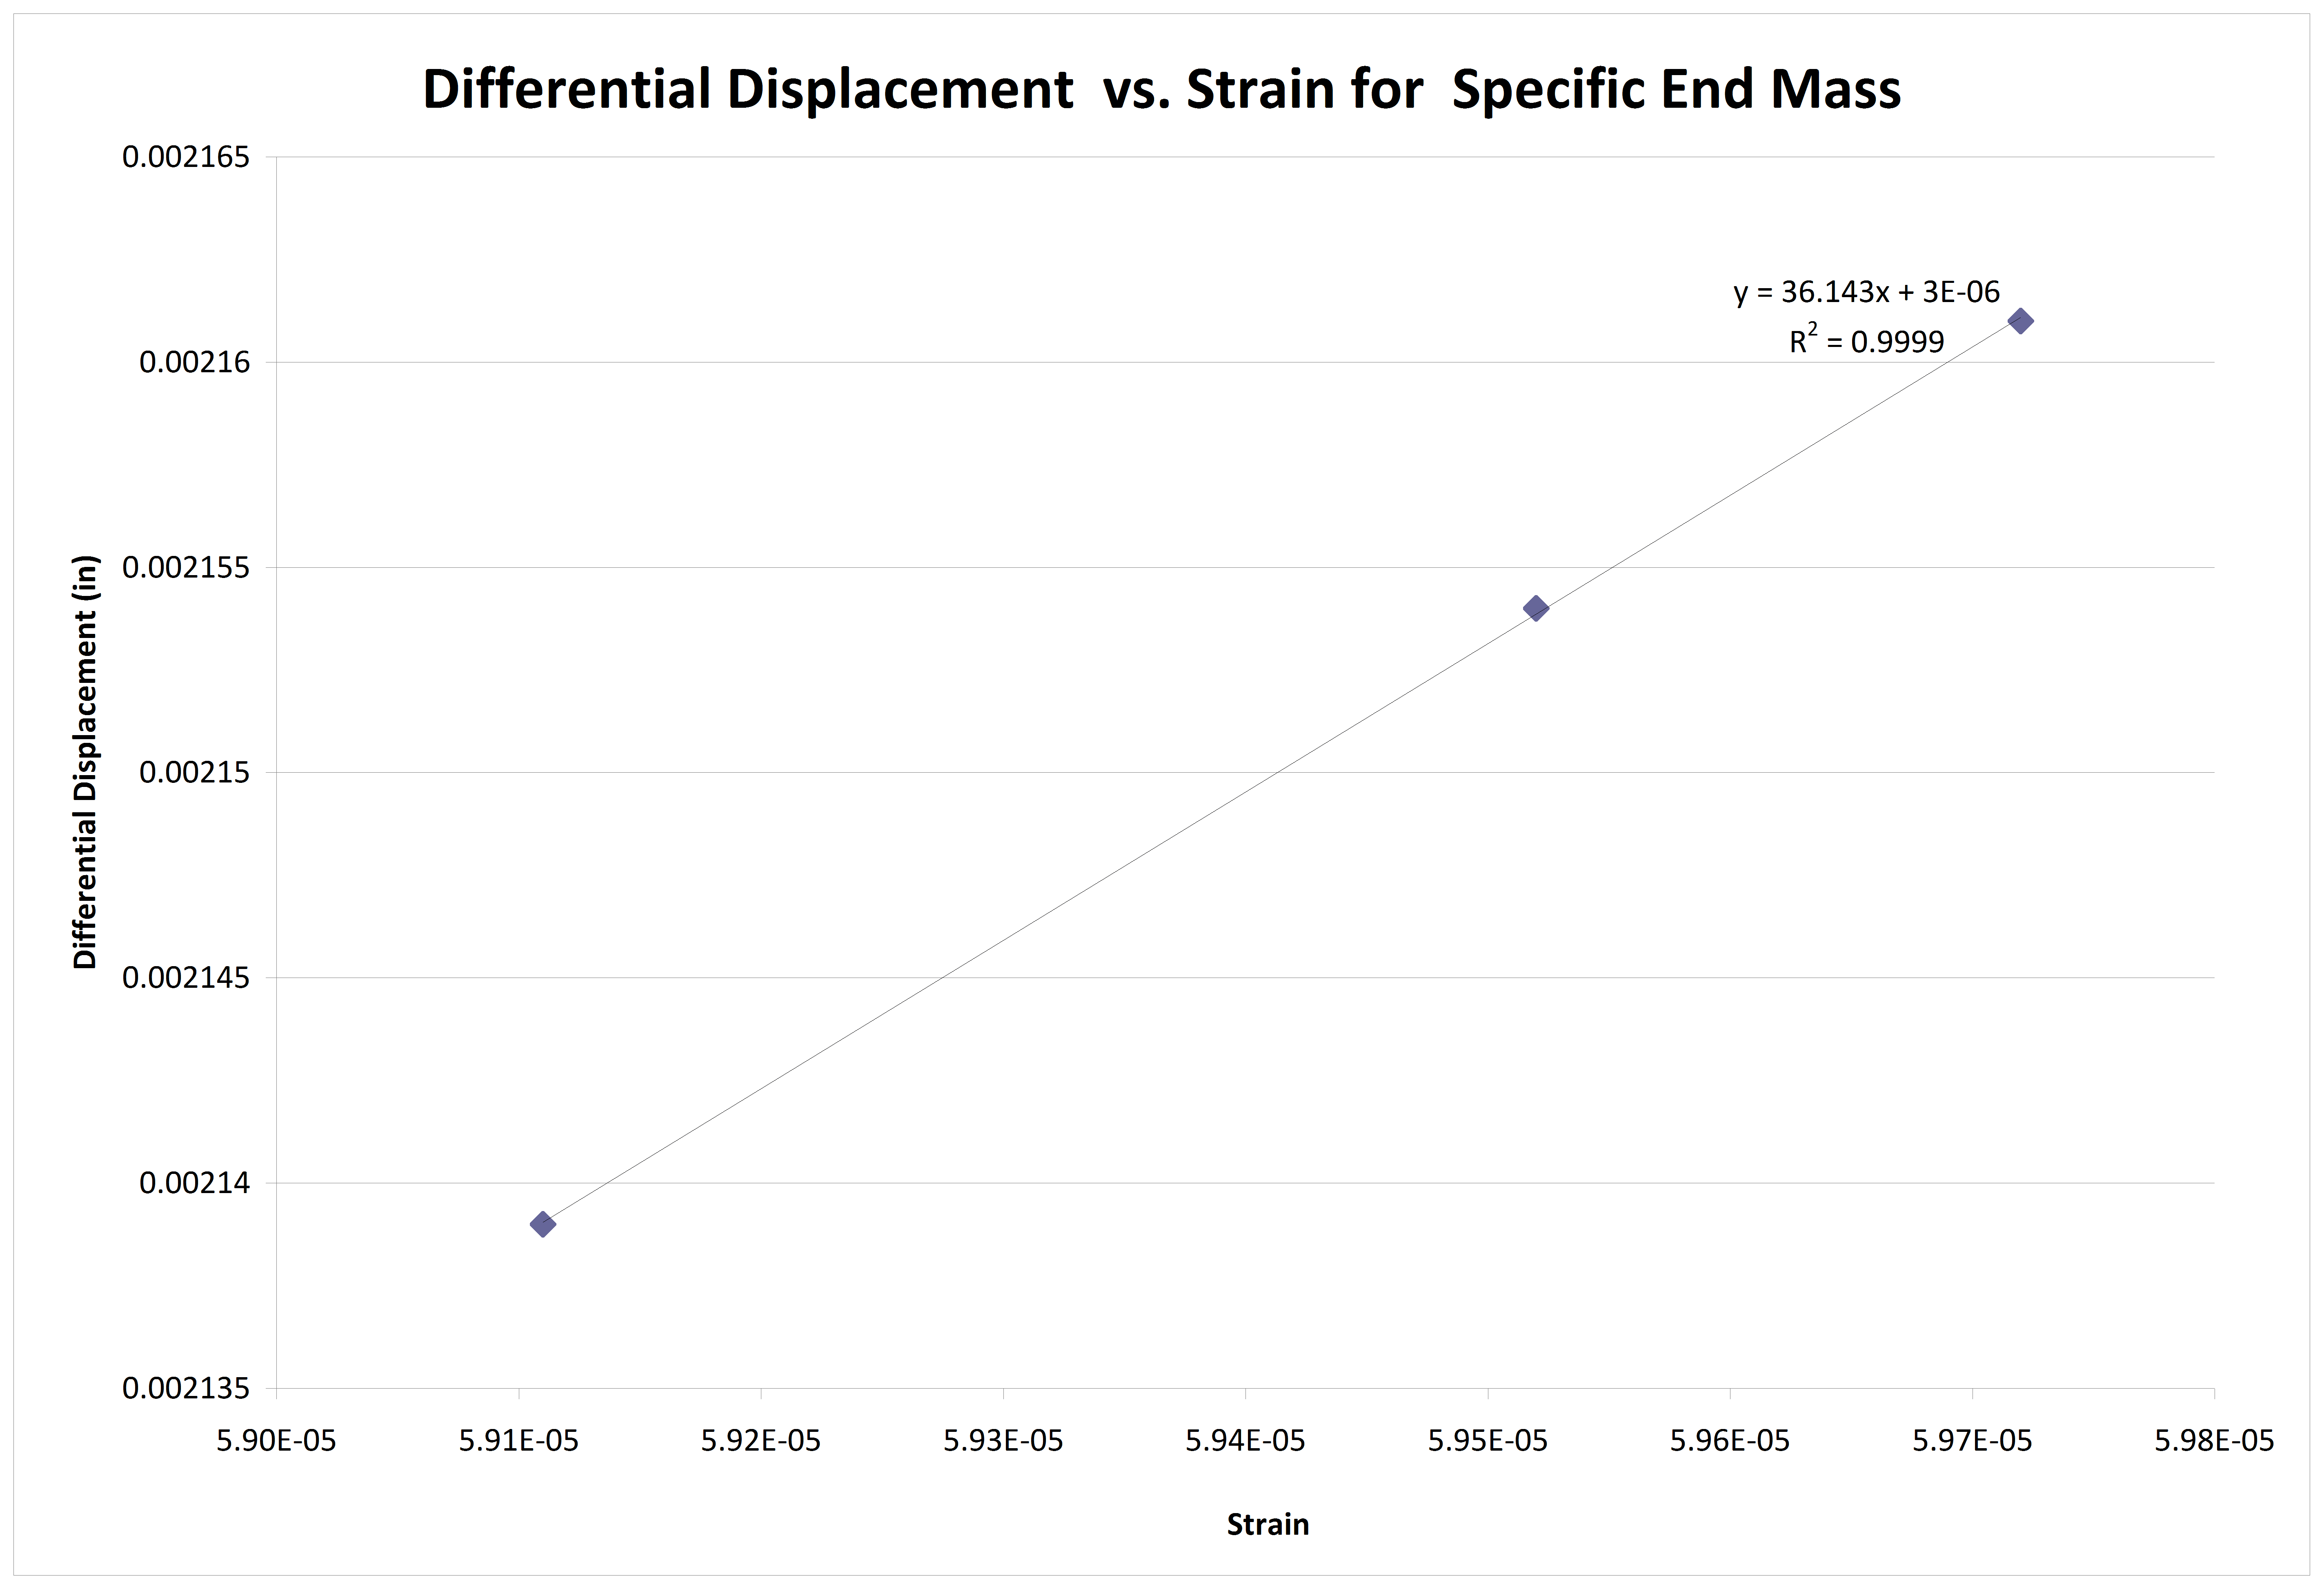 Displacement versus strain for varied G